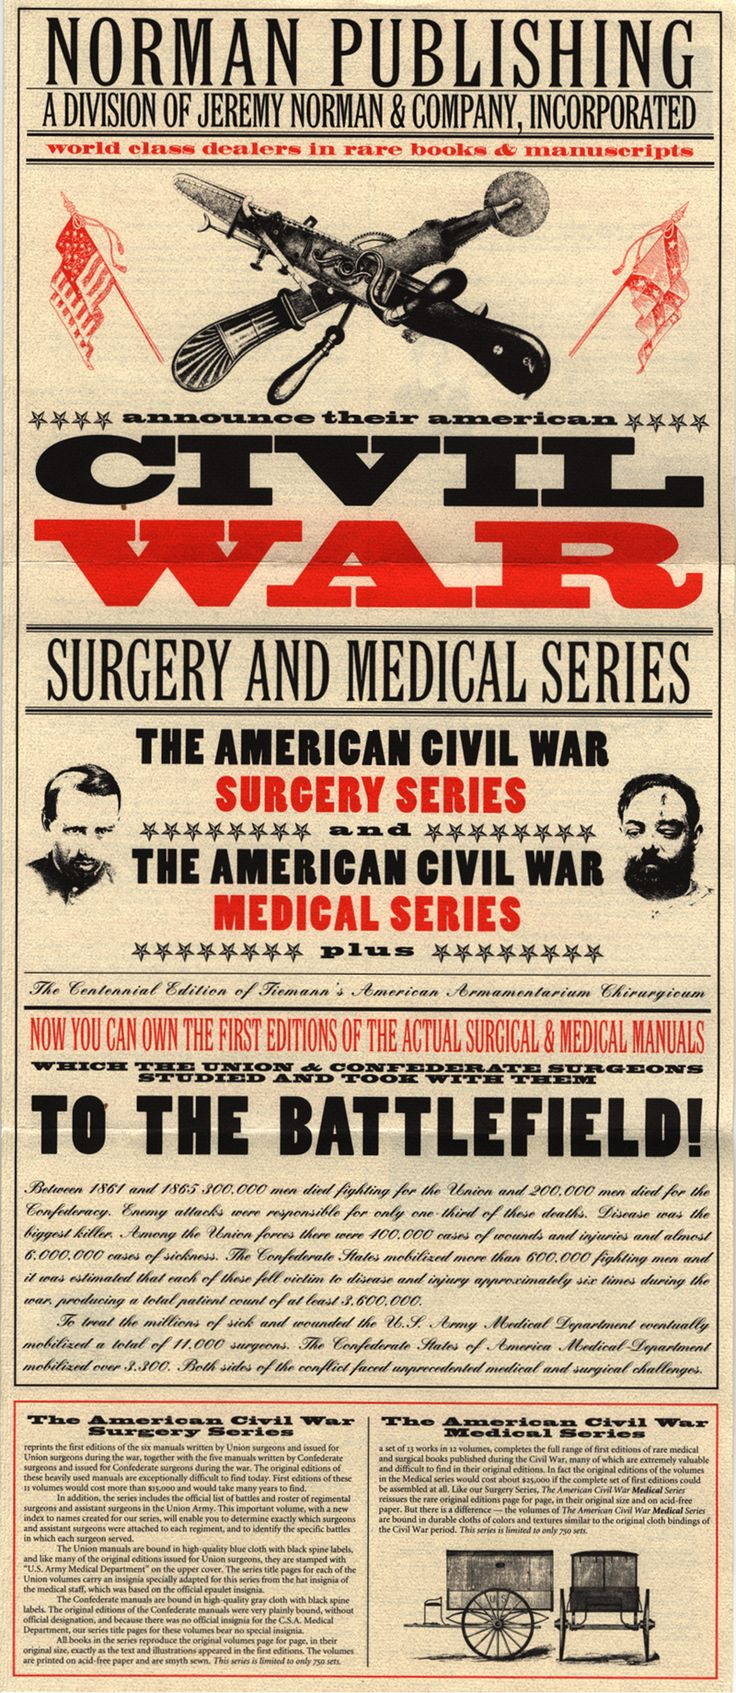 The American Civil War Medical Series - Visit to grab an amazing super hero shirt now on sale!